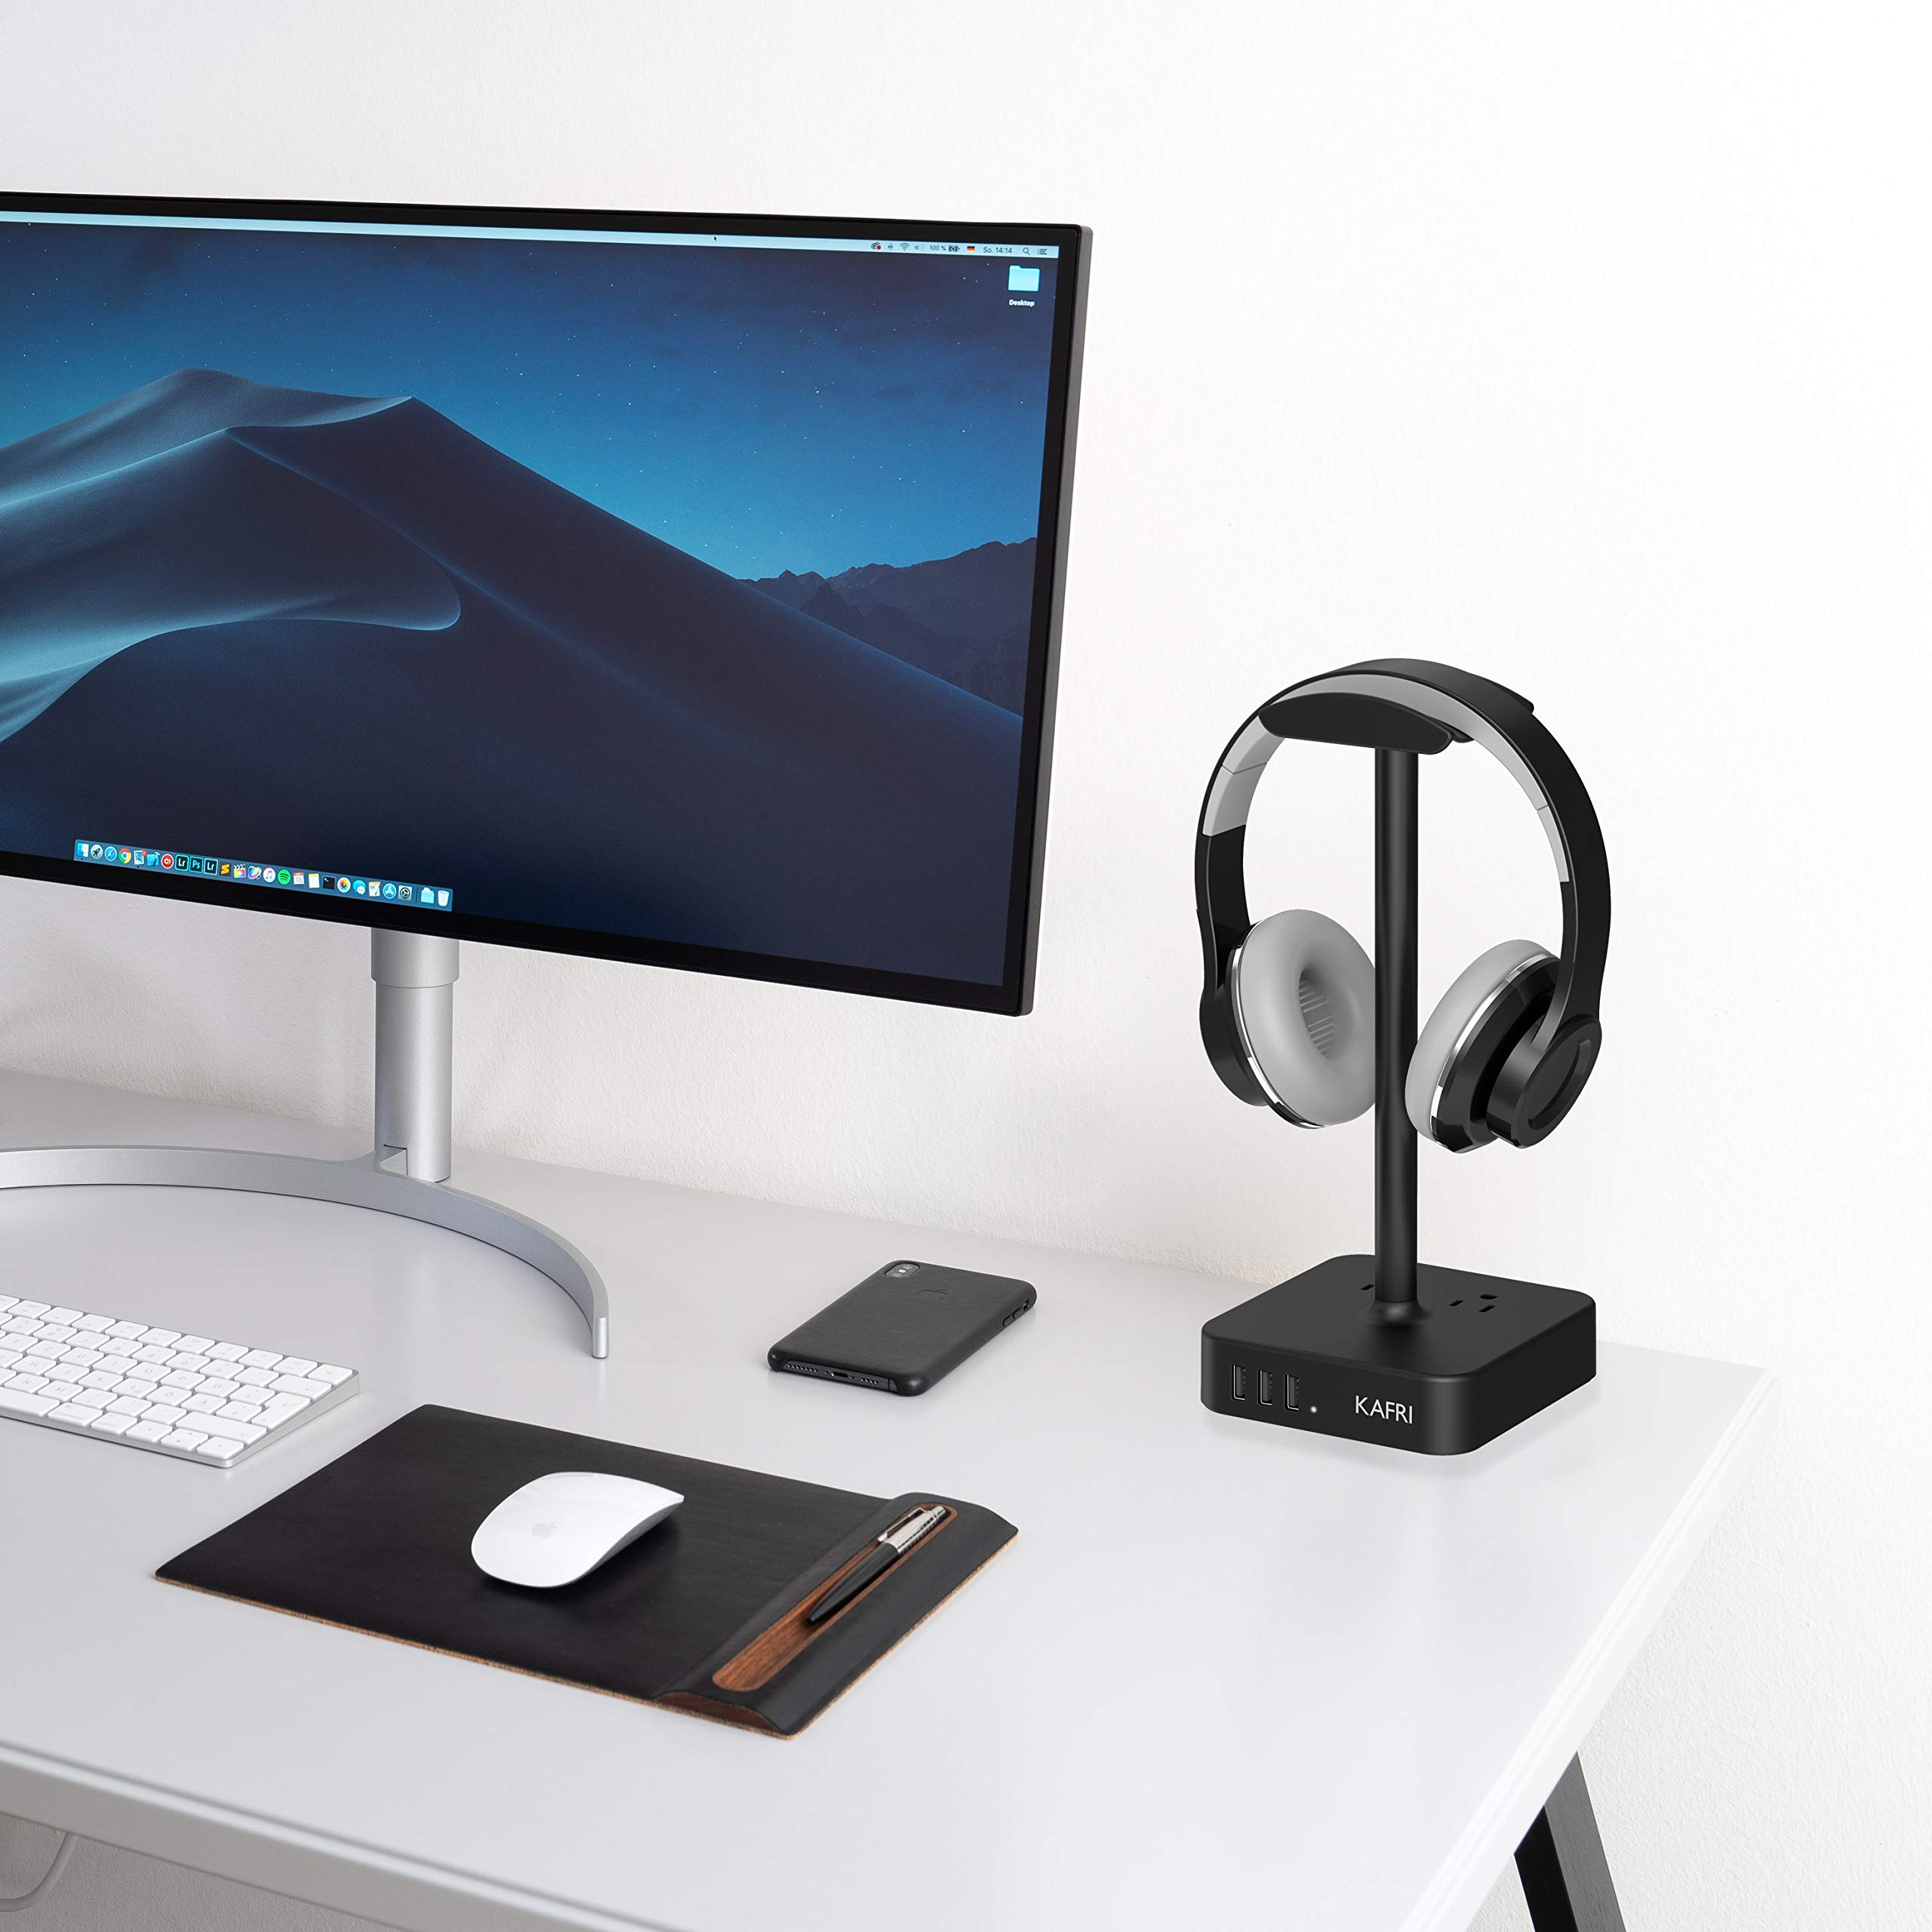 KAFRI Headphone Stand with USB Charger Desk Gaming Headset Holder Hanger Rack with 3 USB Charging Port and 2 AC Outlet - Suitable for Gamer Desktop Table Wireless Earphone Accessories Boyfriend Gift by KAFRI (Image #6)